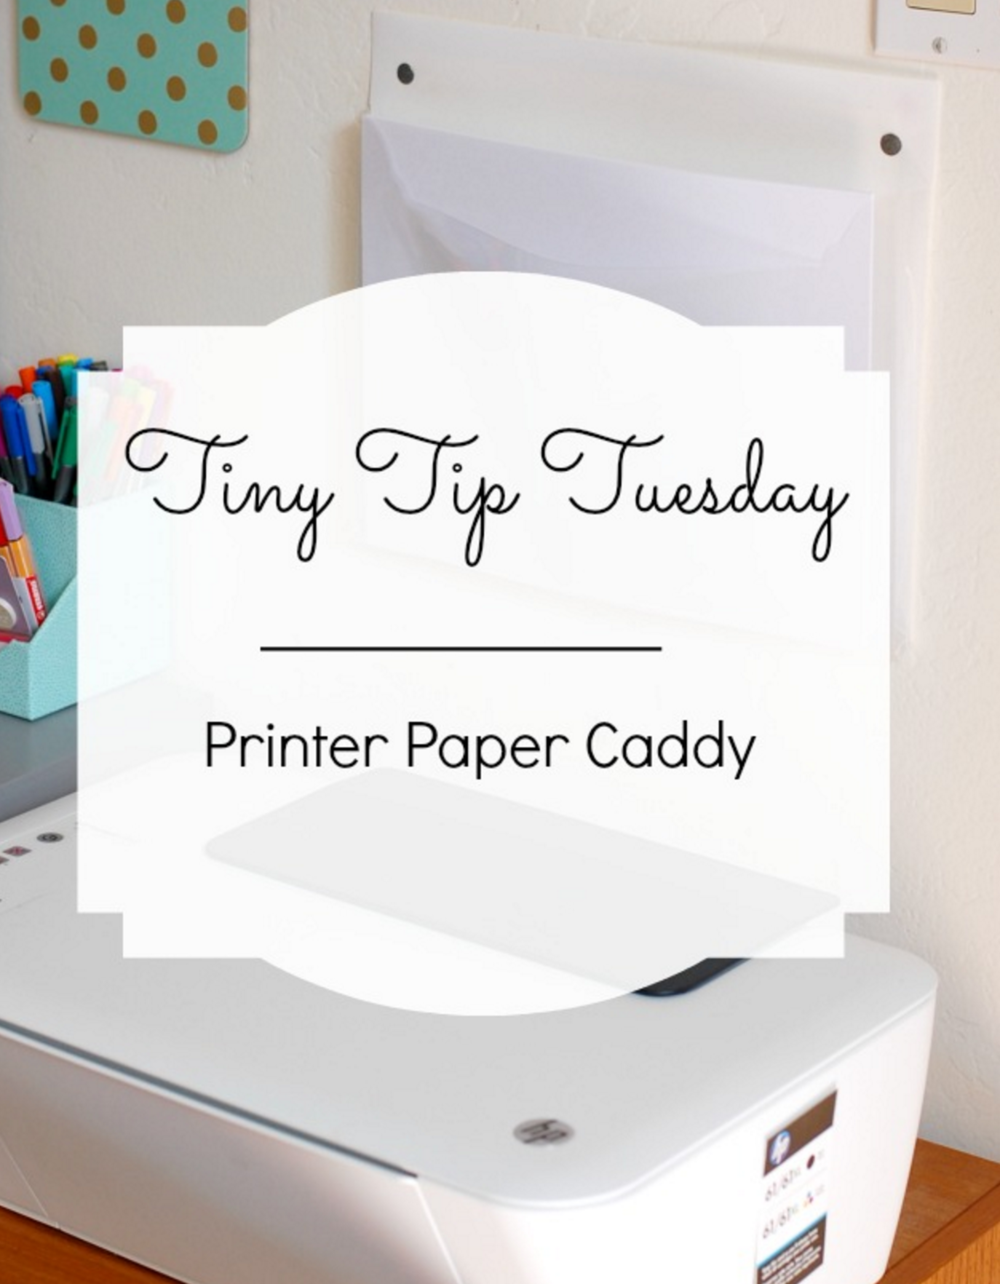 printer paper caddy